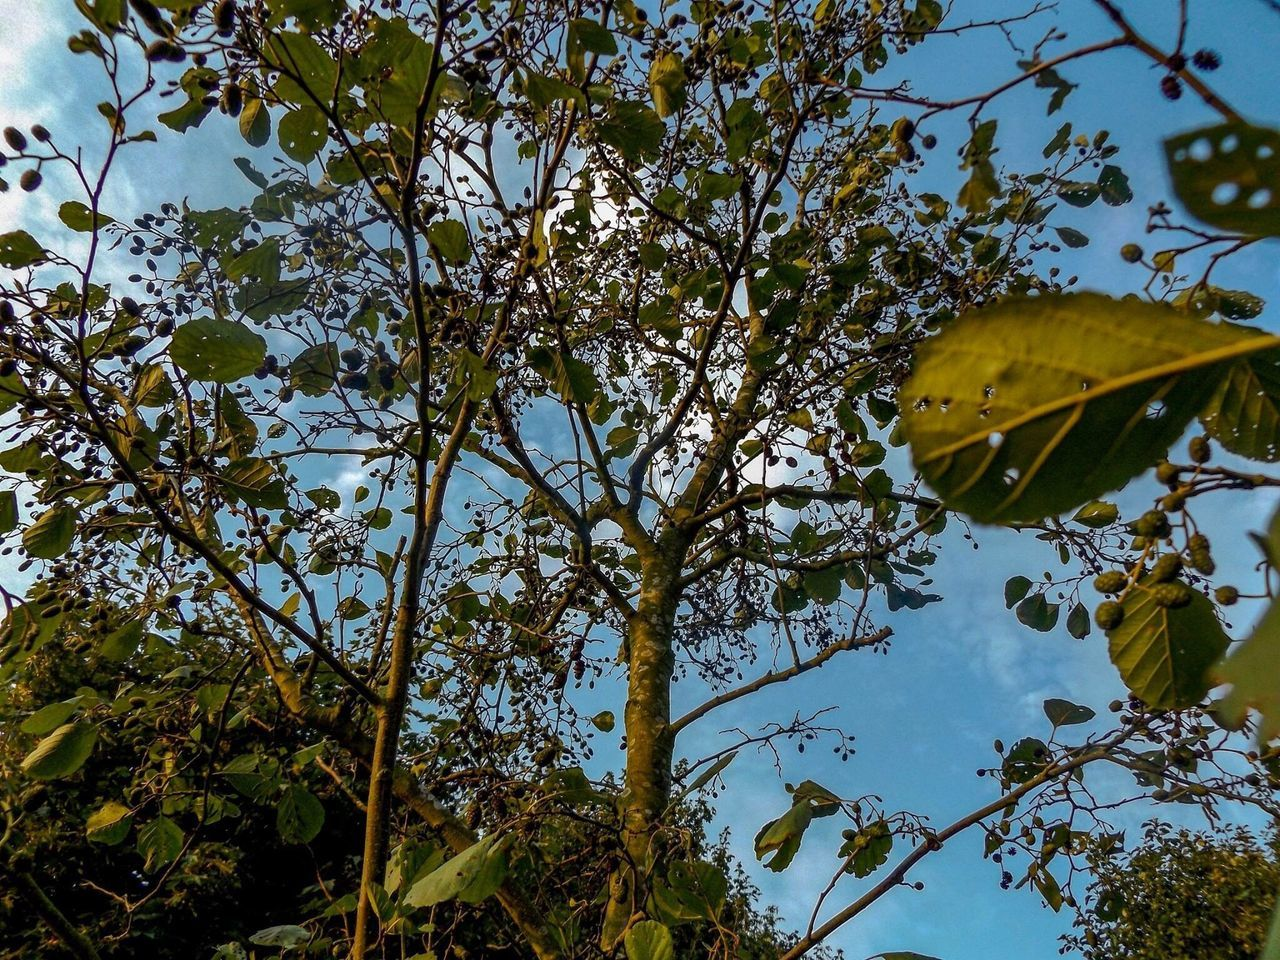 tree, leaf, nature, growth, branch, low angle view, beauty in nature, outdoors, day, autumn, no people, sky, scenics, fragility, freshness, close-up